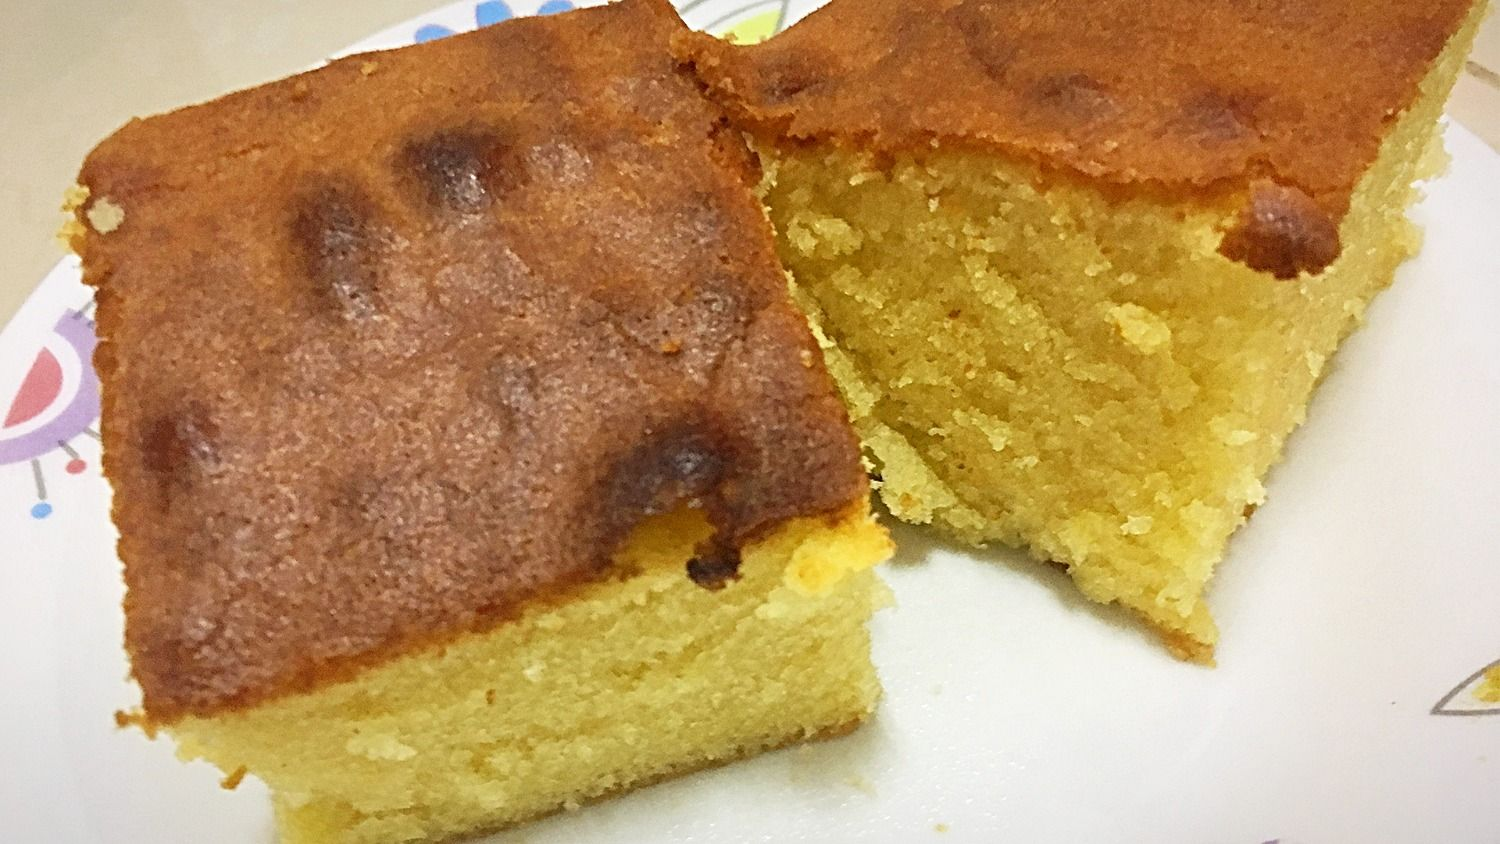 Sri Lankan butter cake is a classic for holidays, birthdays and ...